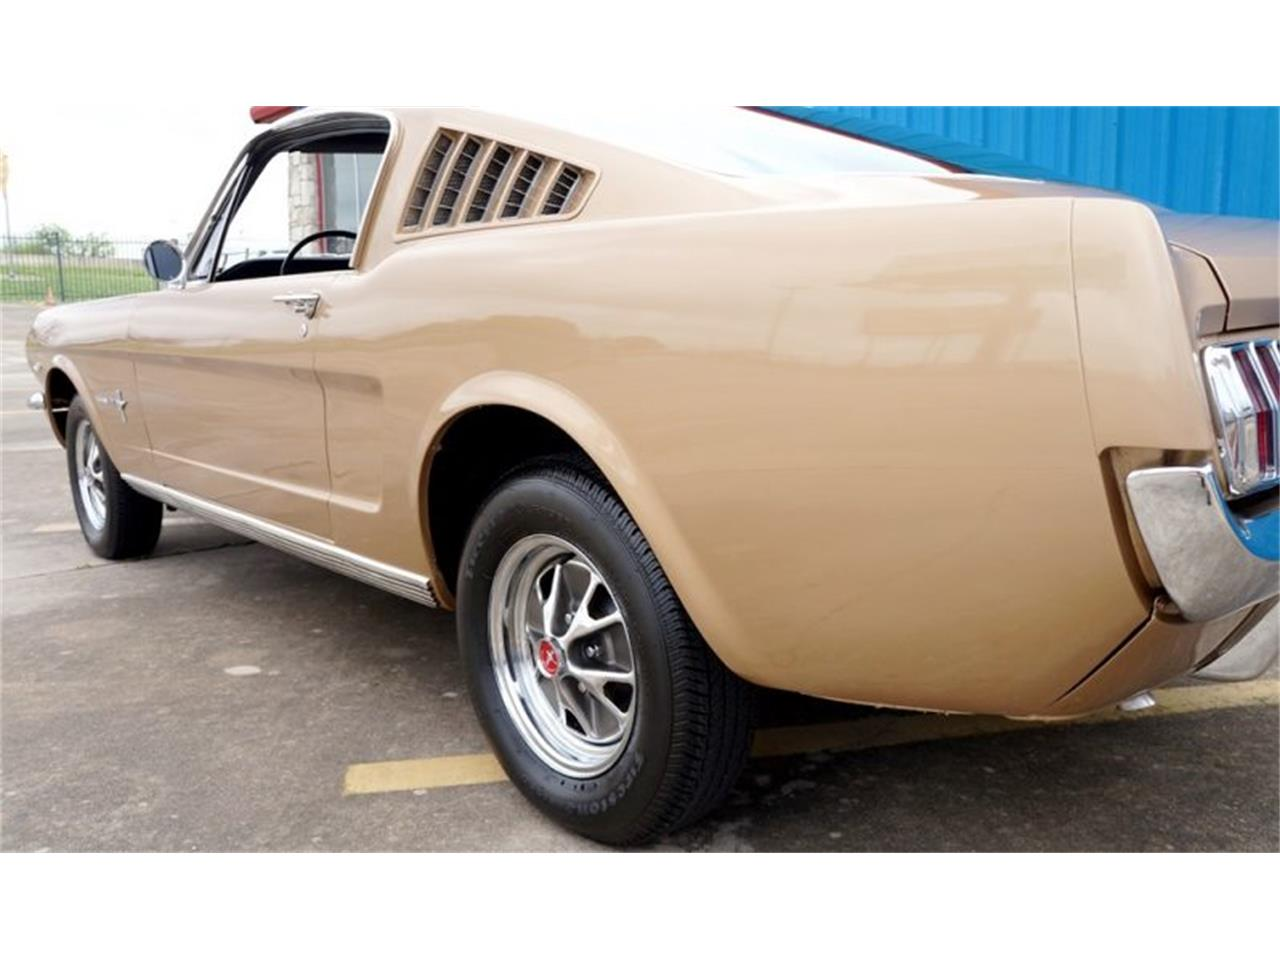 Ford Mustang Fastback matching 1965 prix tout compris